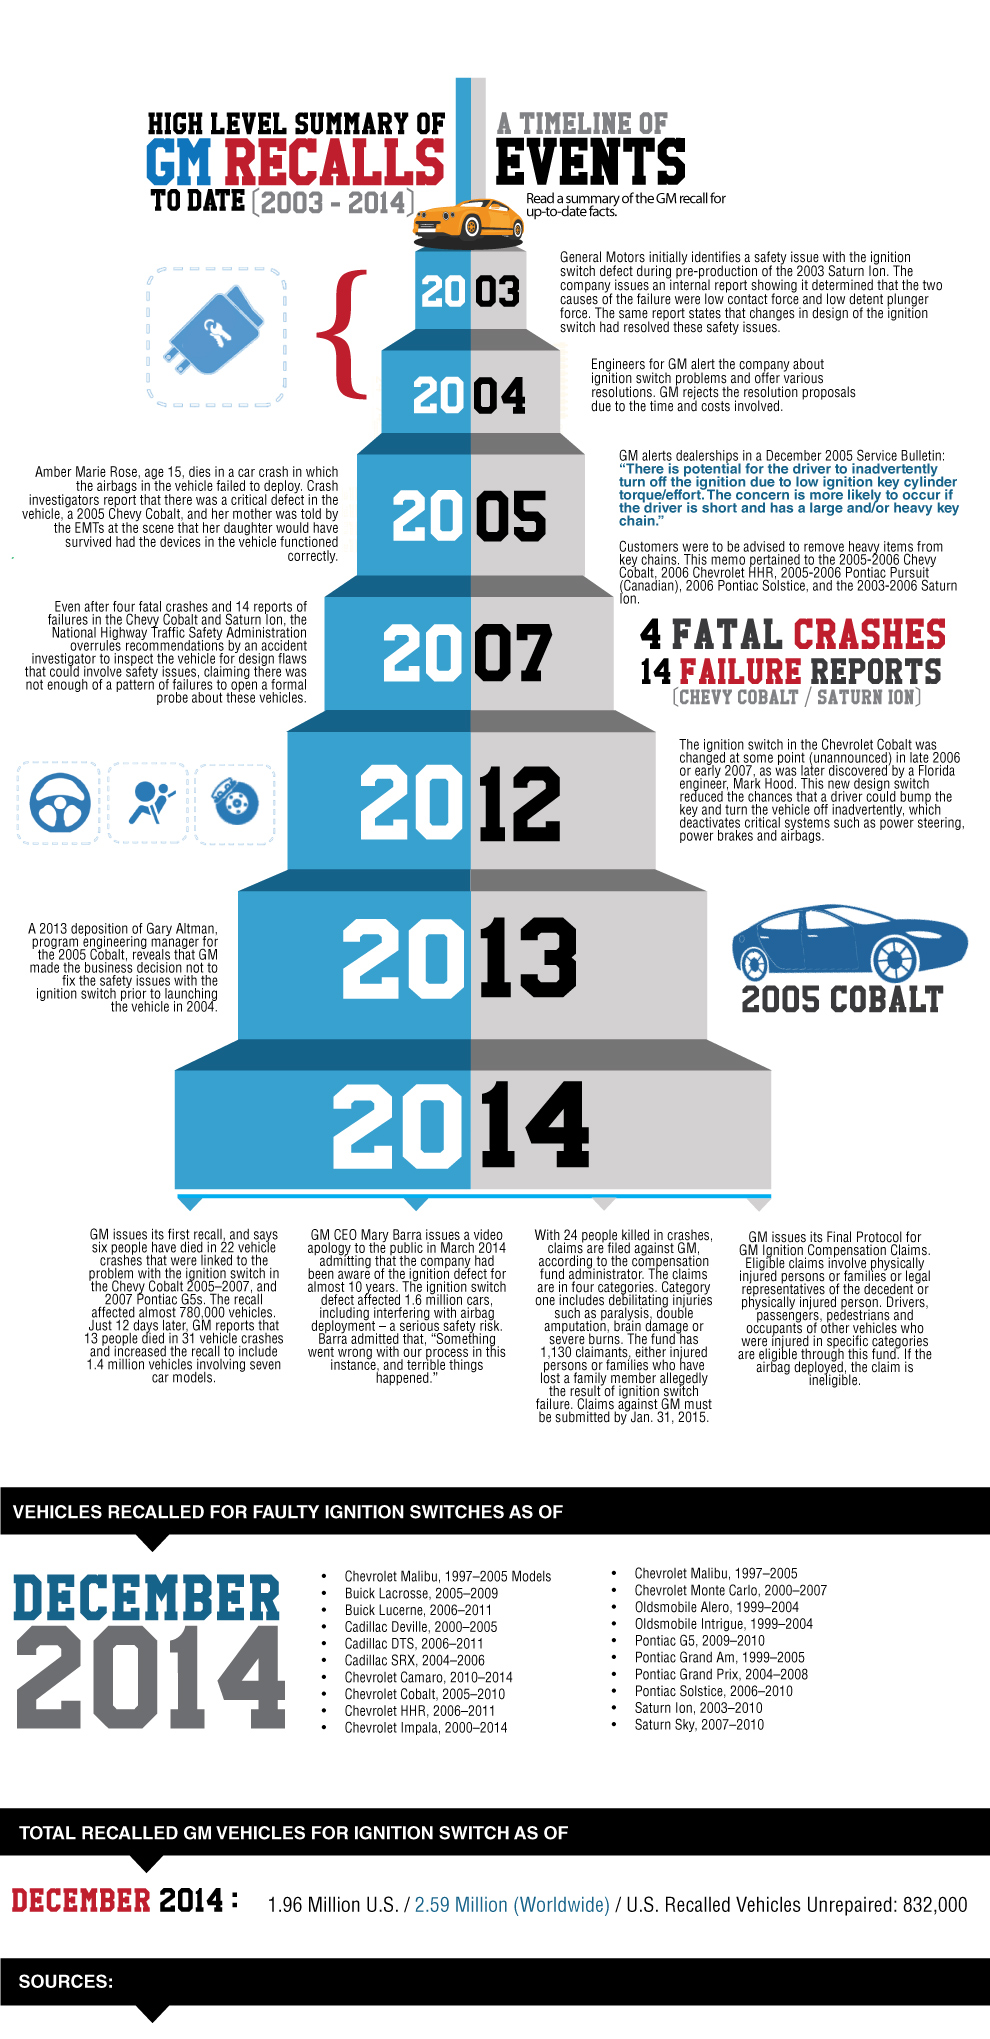 High-Level Summary of GM Recalls From 2003 to 2014